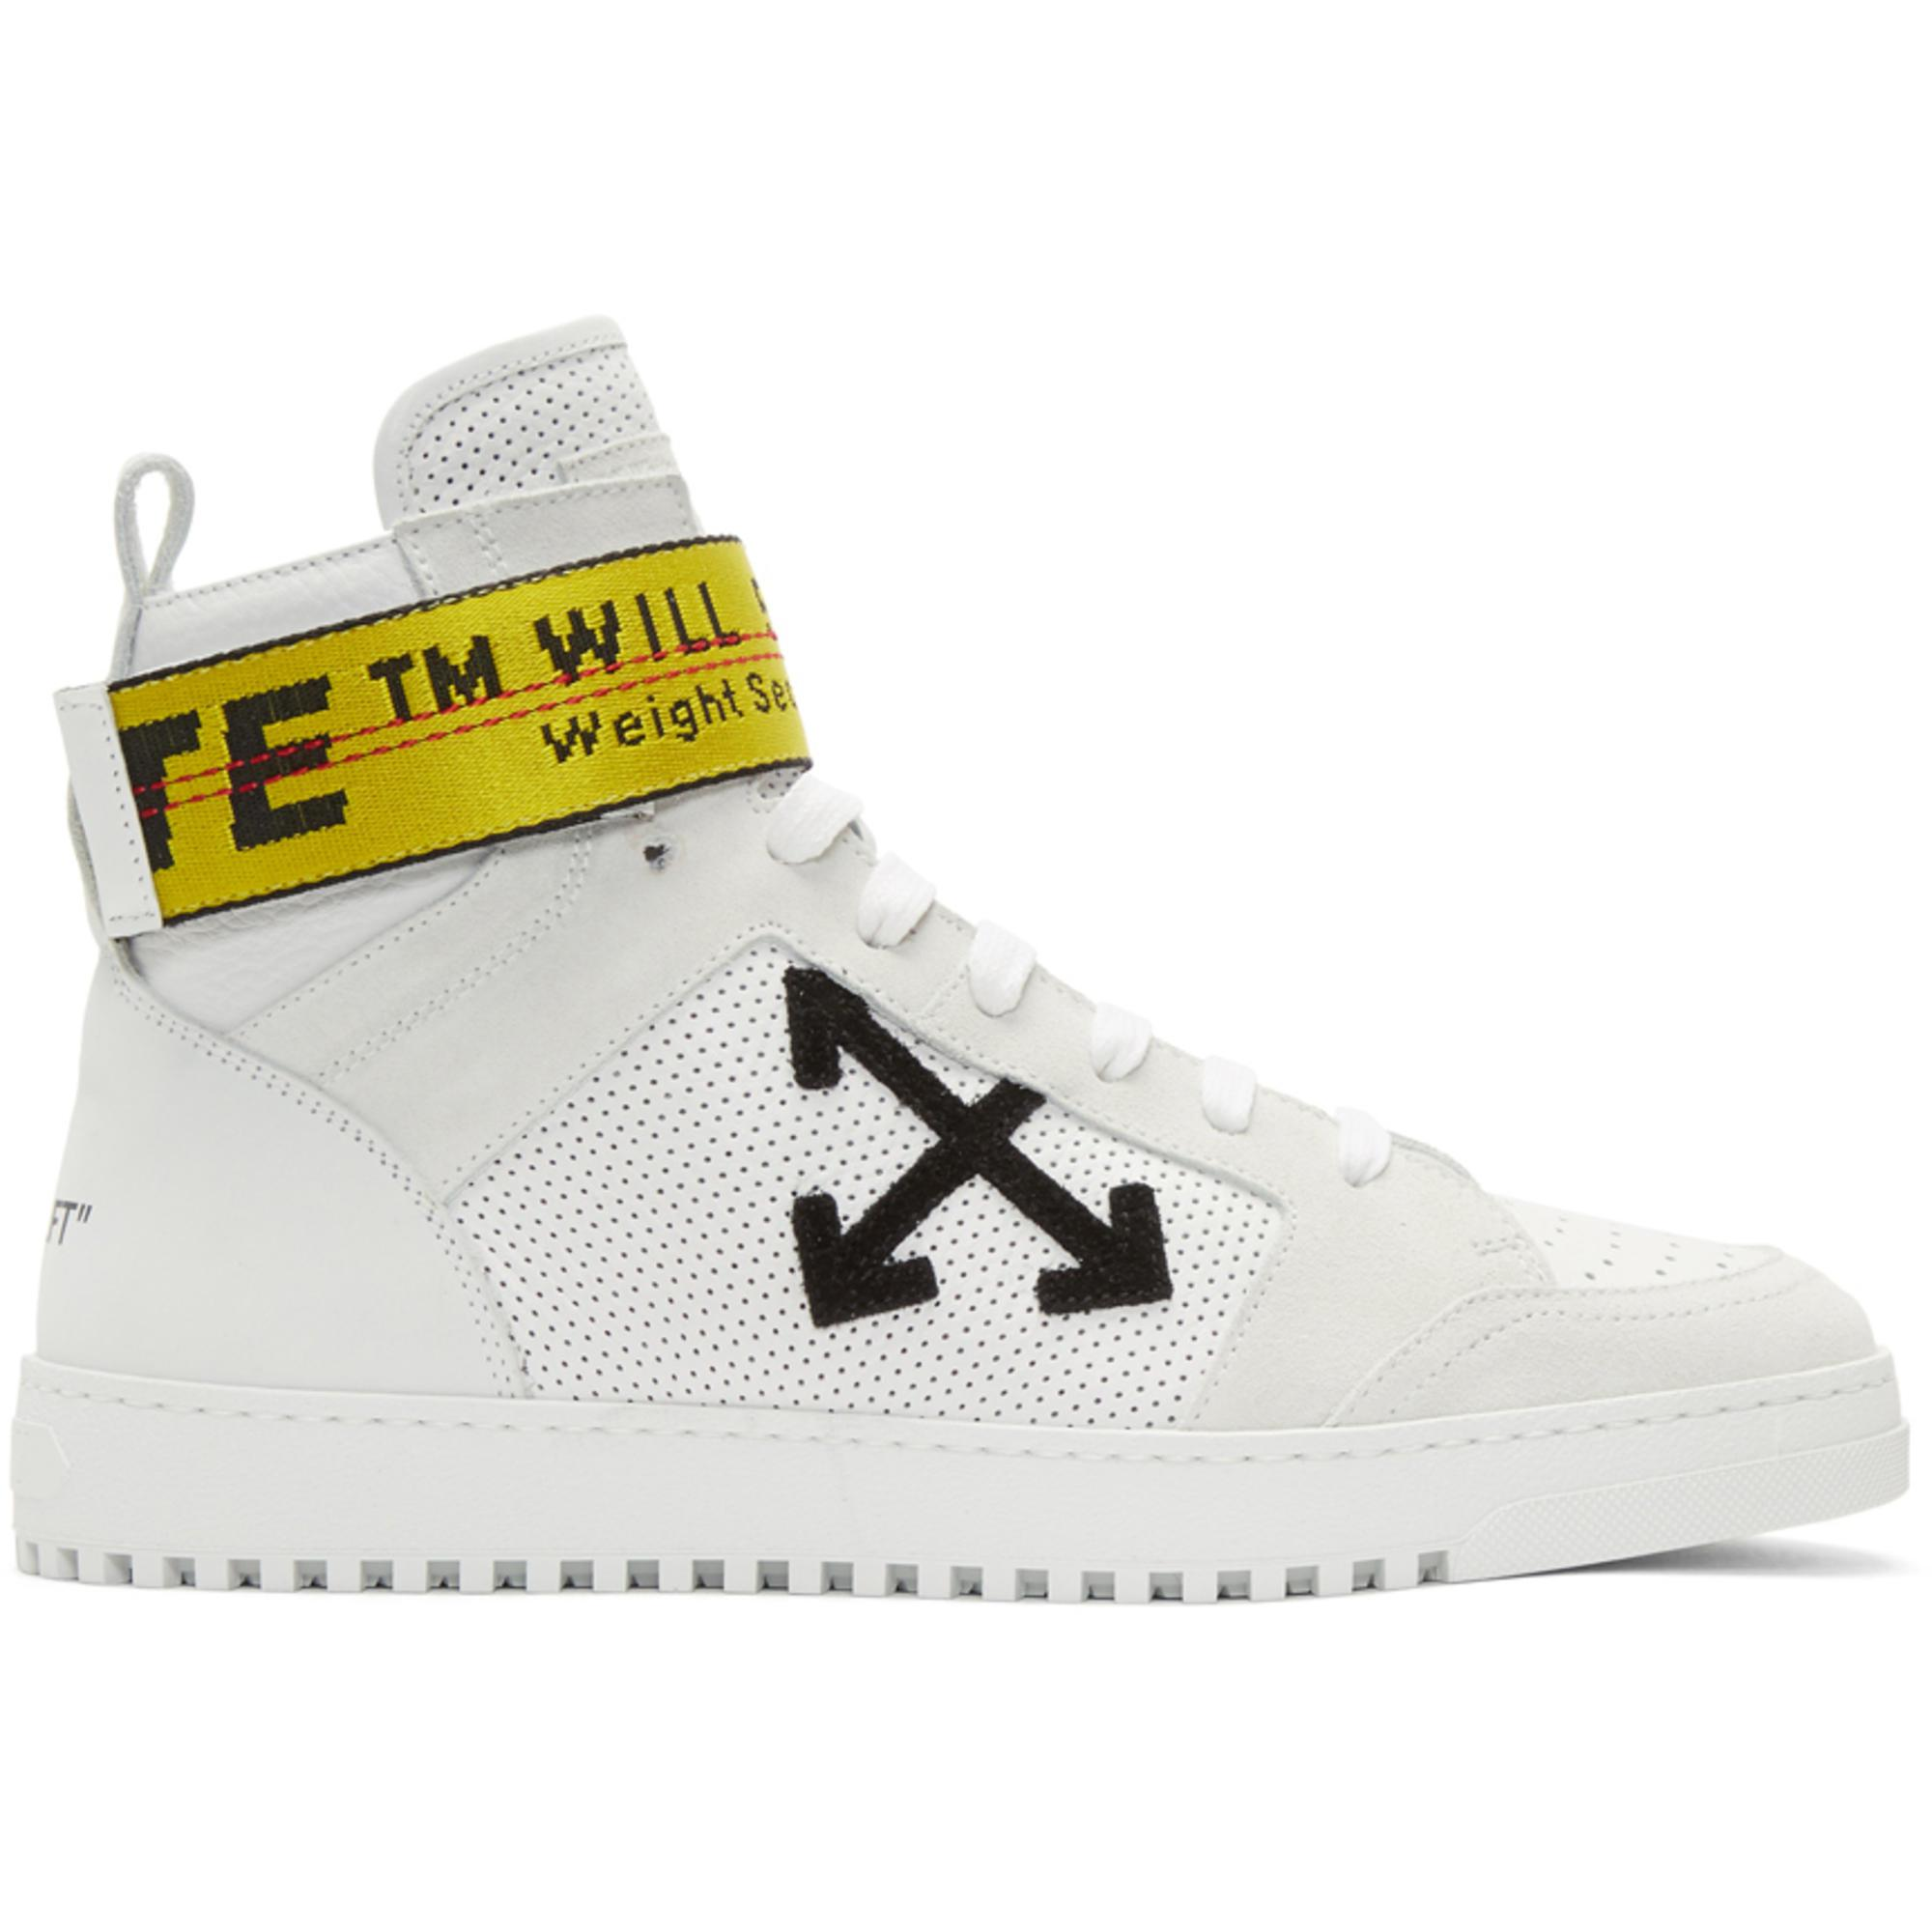 Lyst - Off-White CO Virgil Abloh White Belt High-top Sneaker